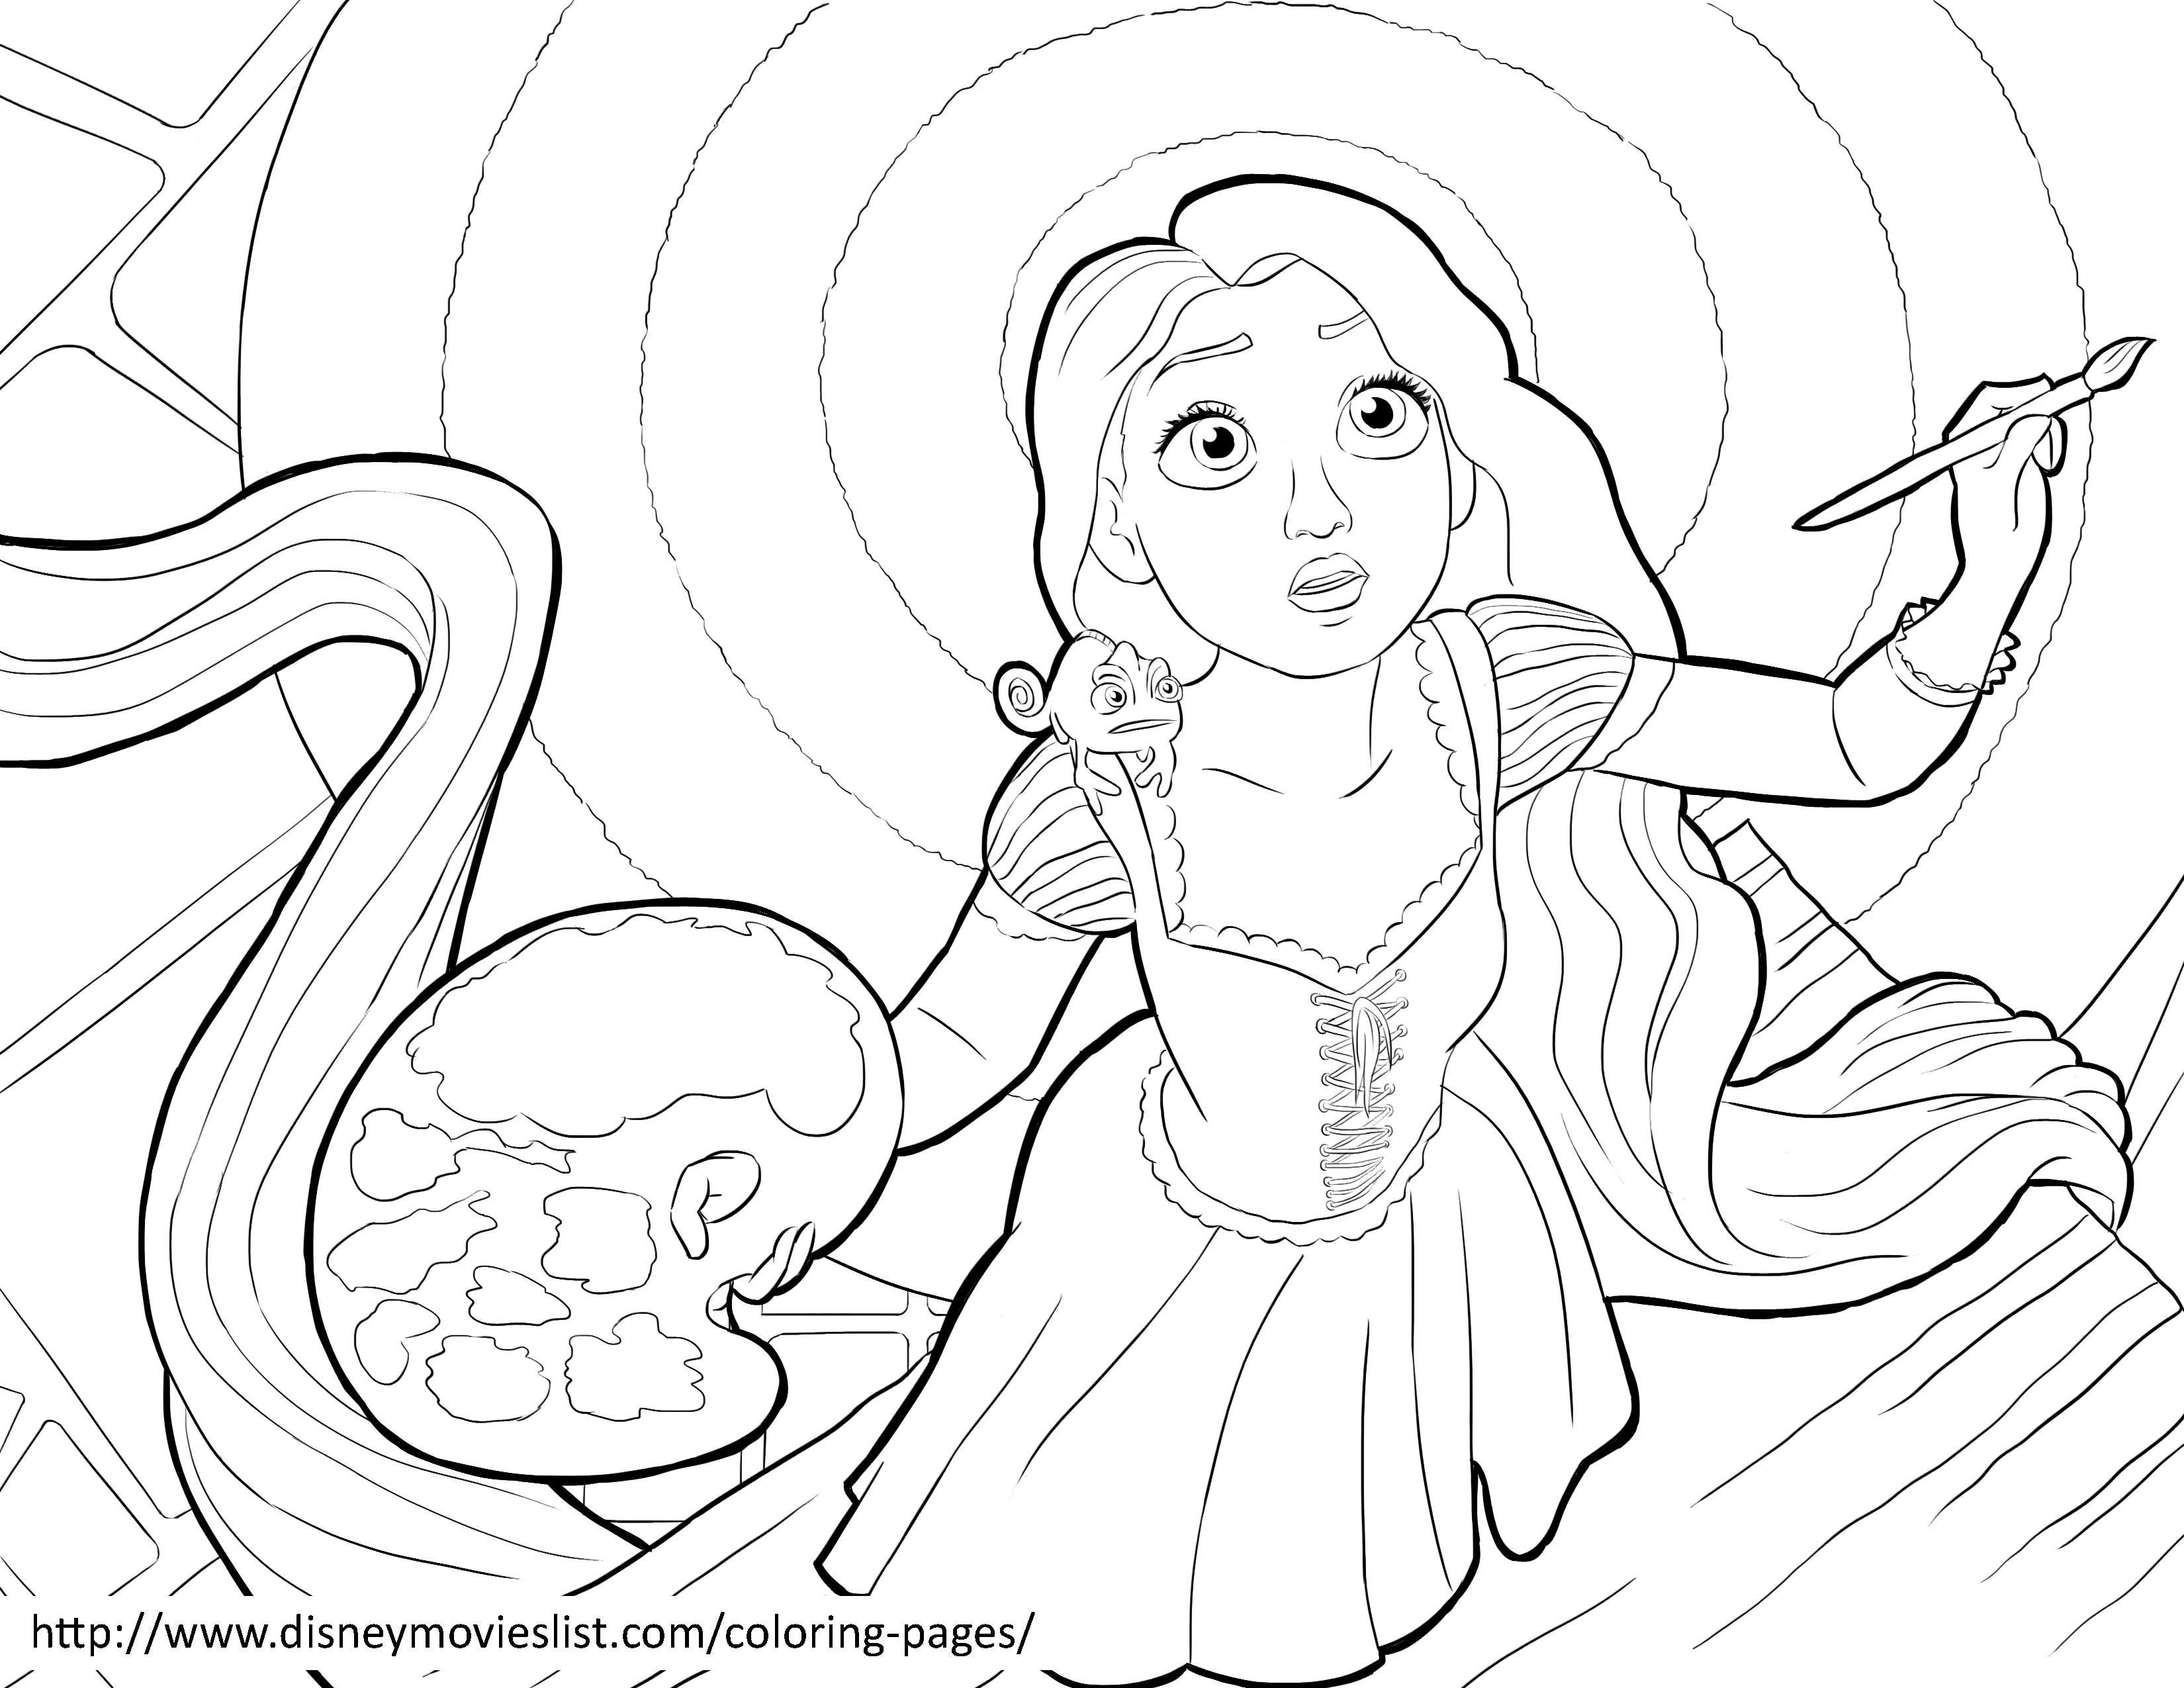 Disneys Tangled Coloring Pages Sheet Free Disney Printable Tangled